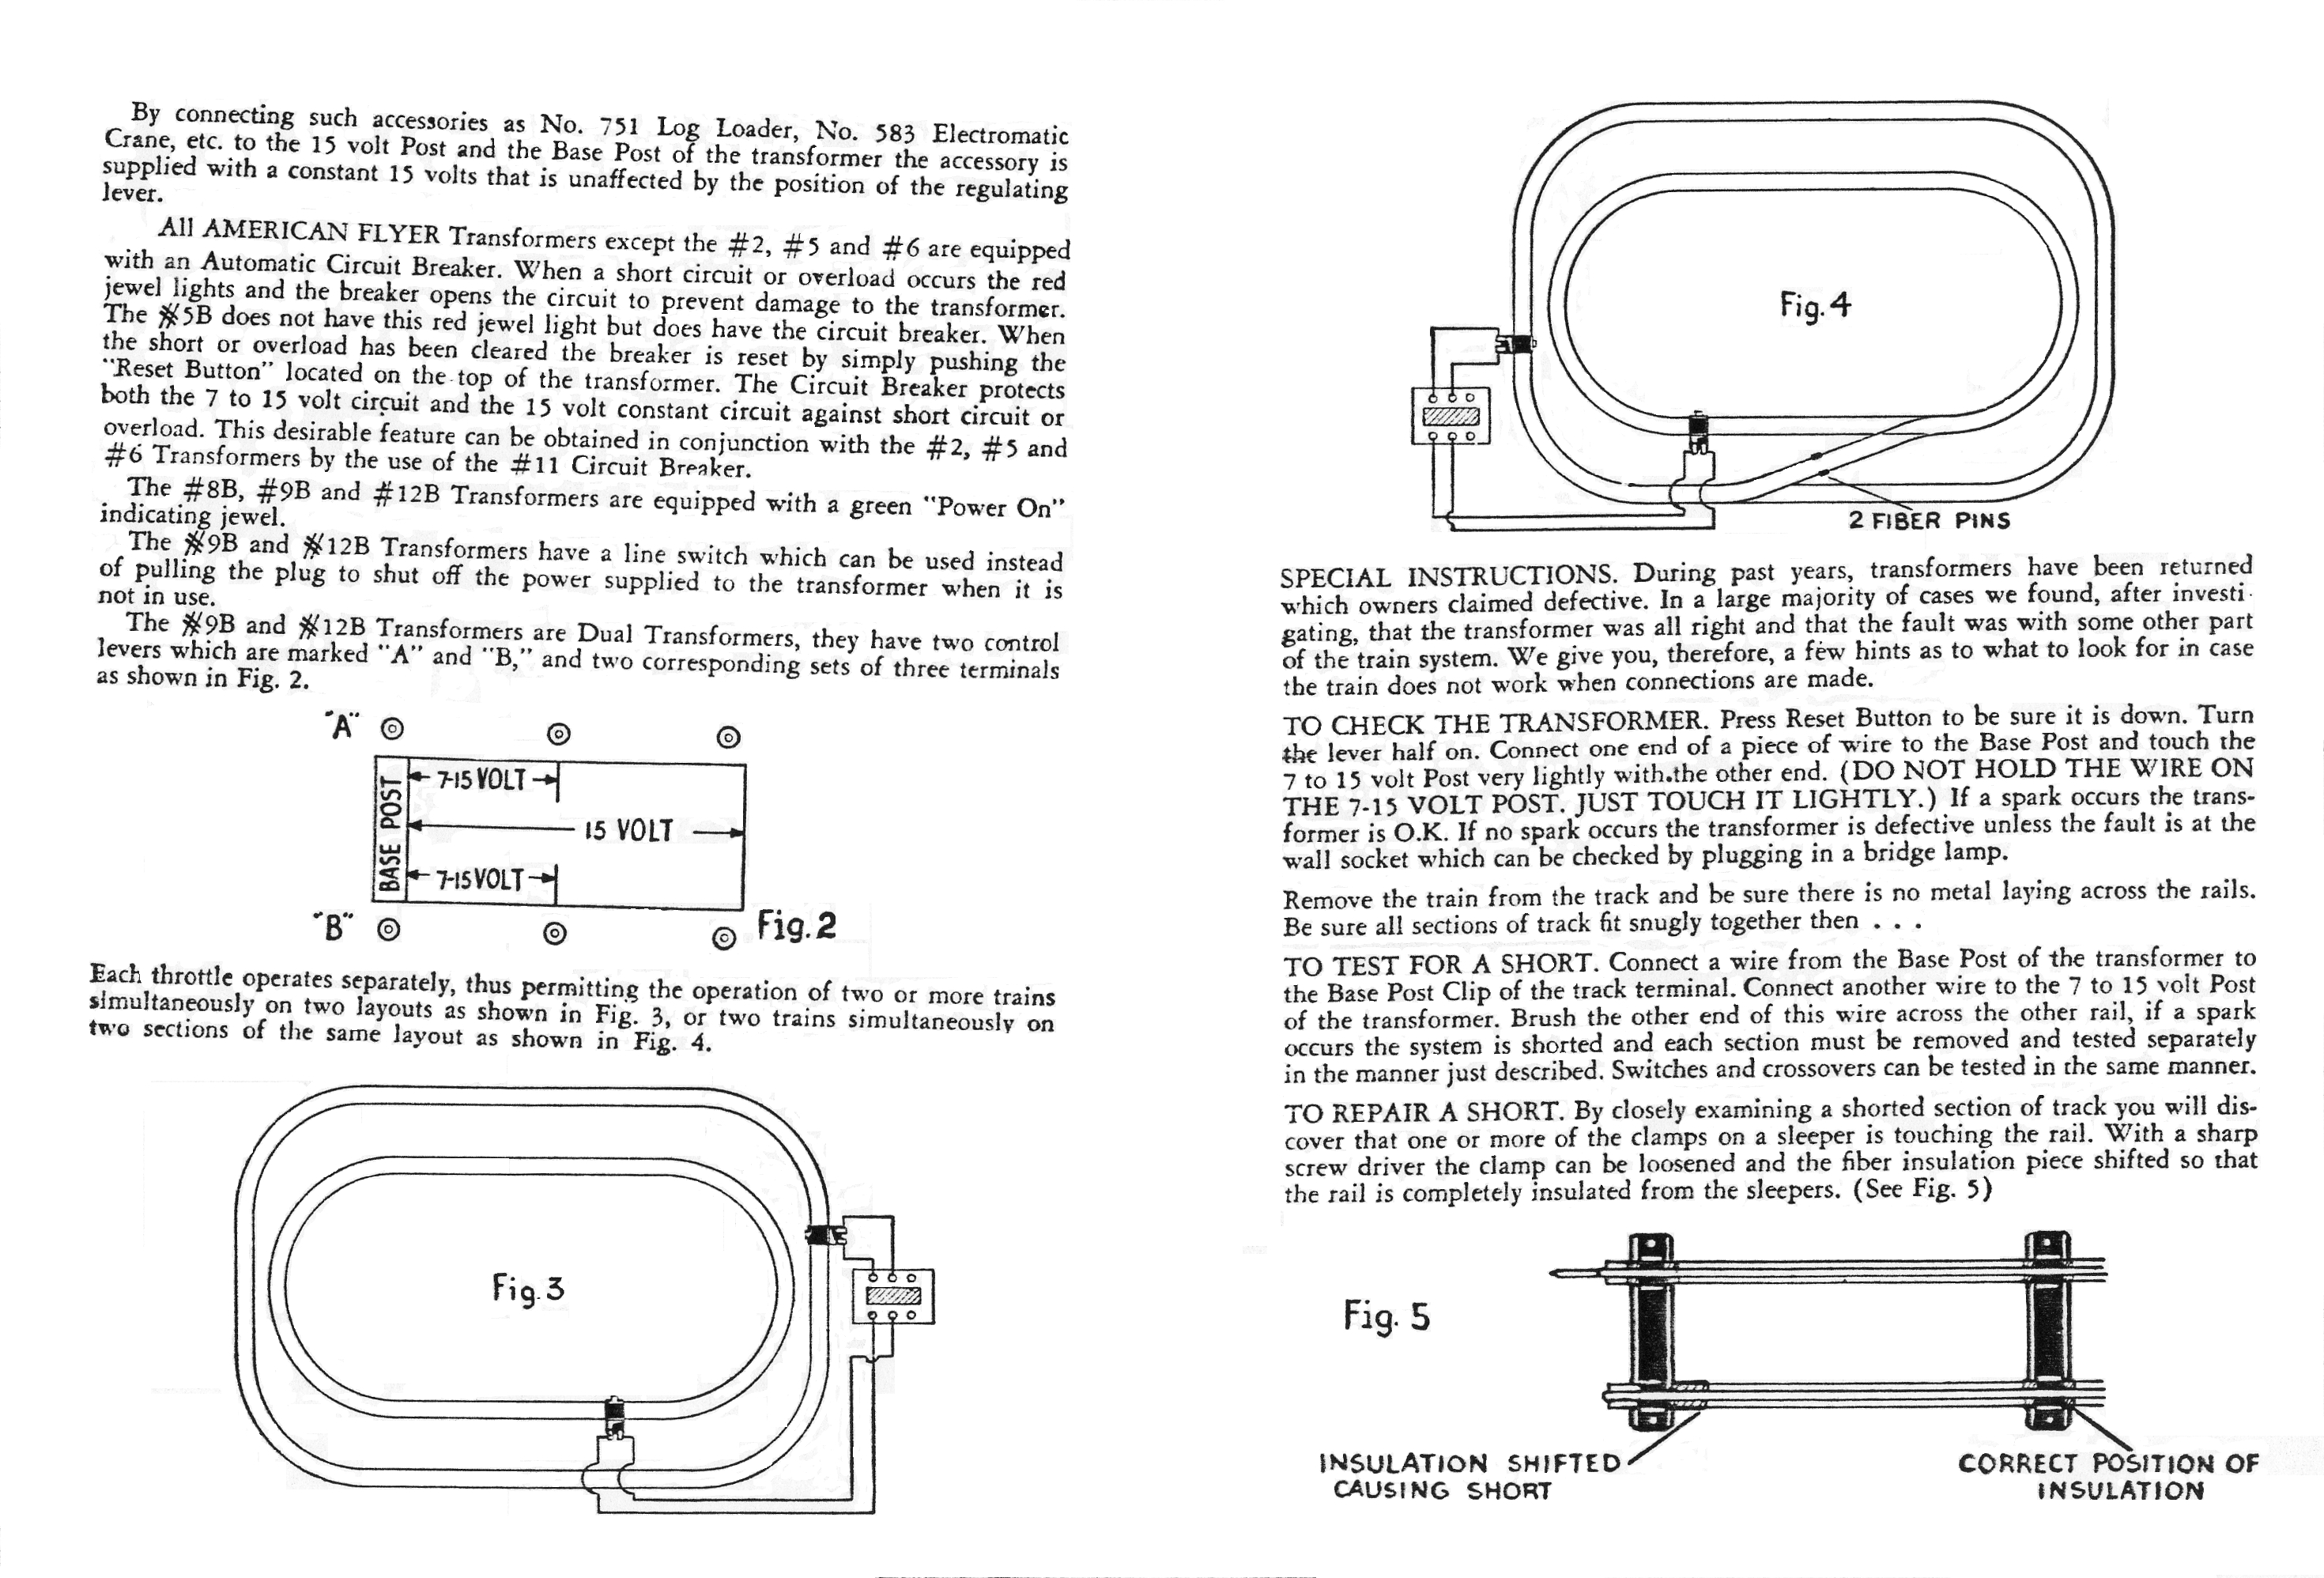 American Flyer Transformer Instructions - Page 2